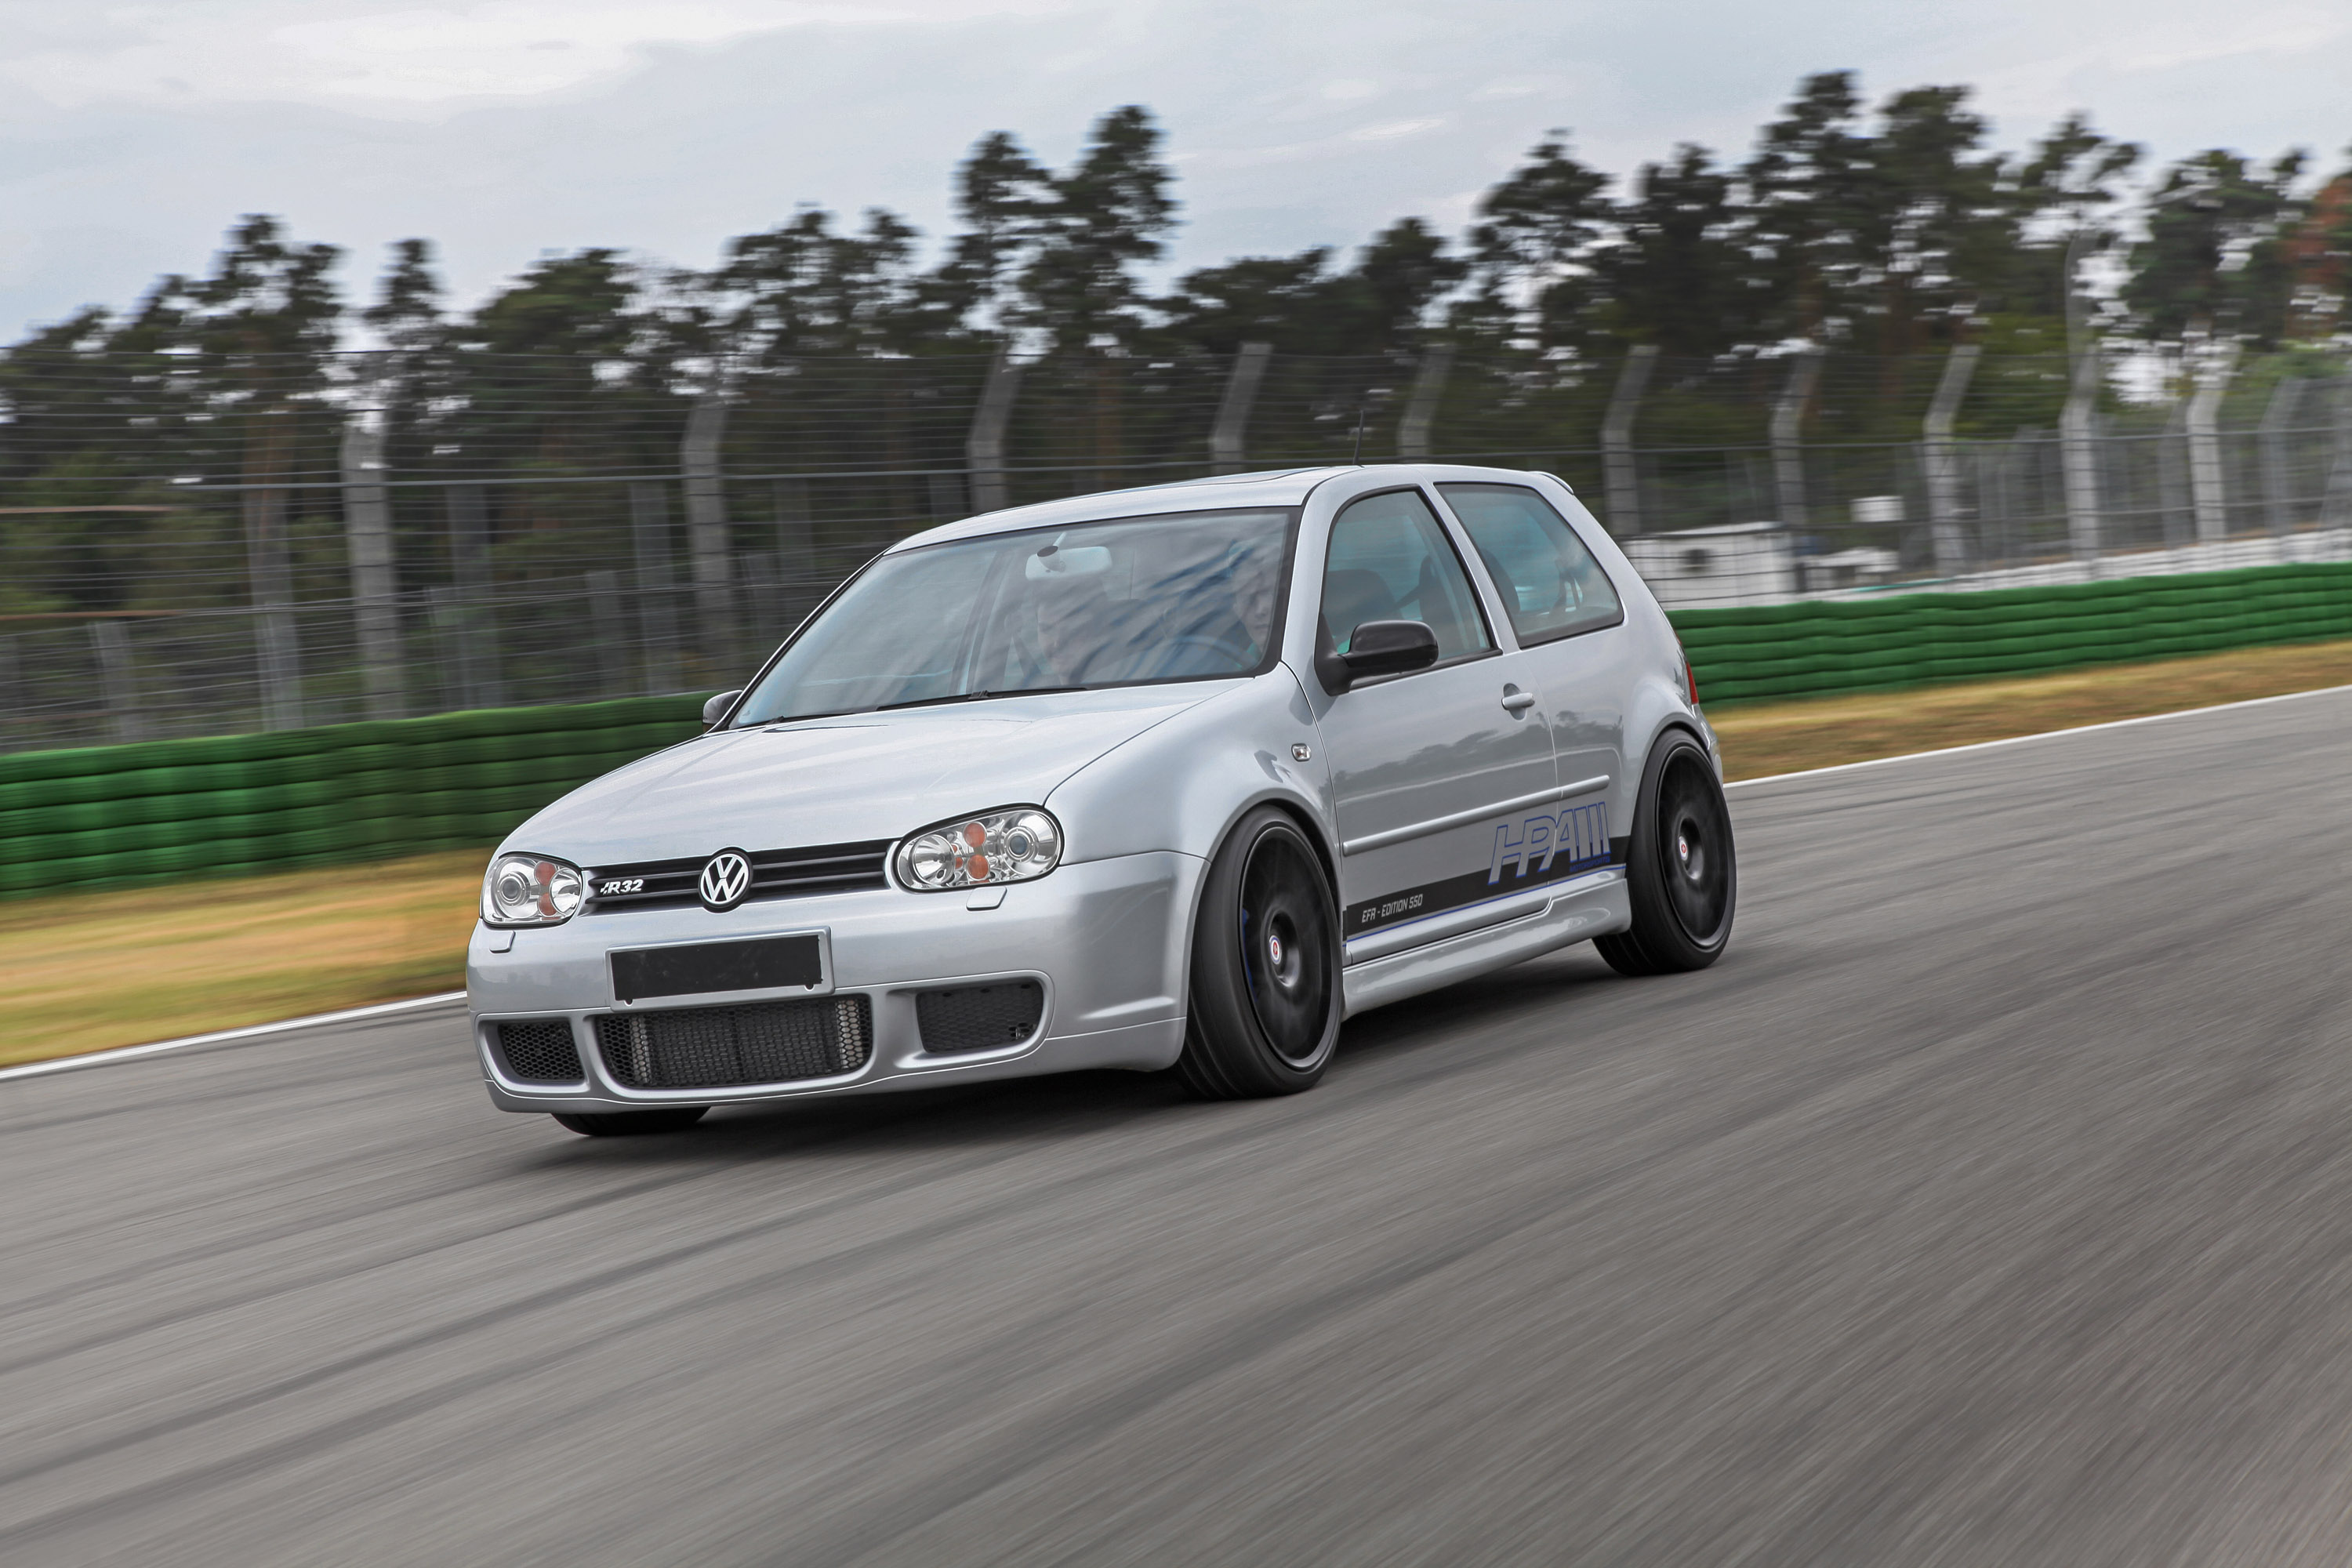 Golf Pictures: HPerformance And HPA Motorsports Create One-Off Volkswagen